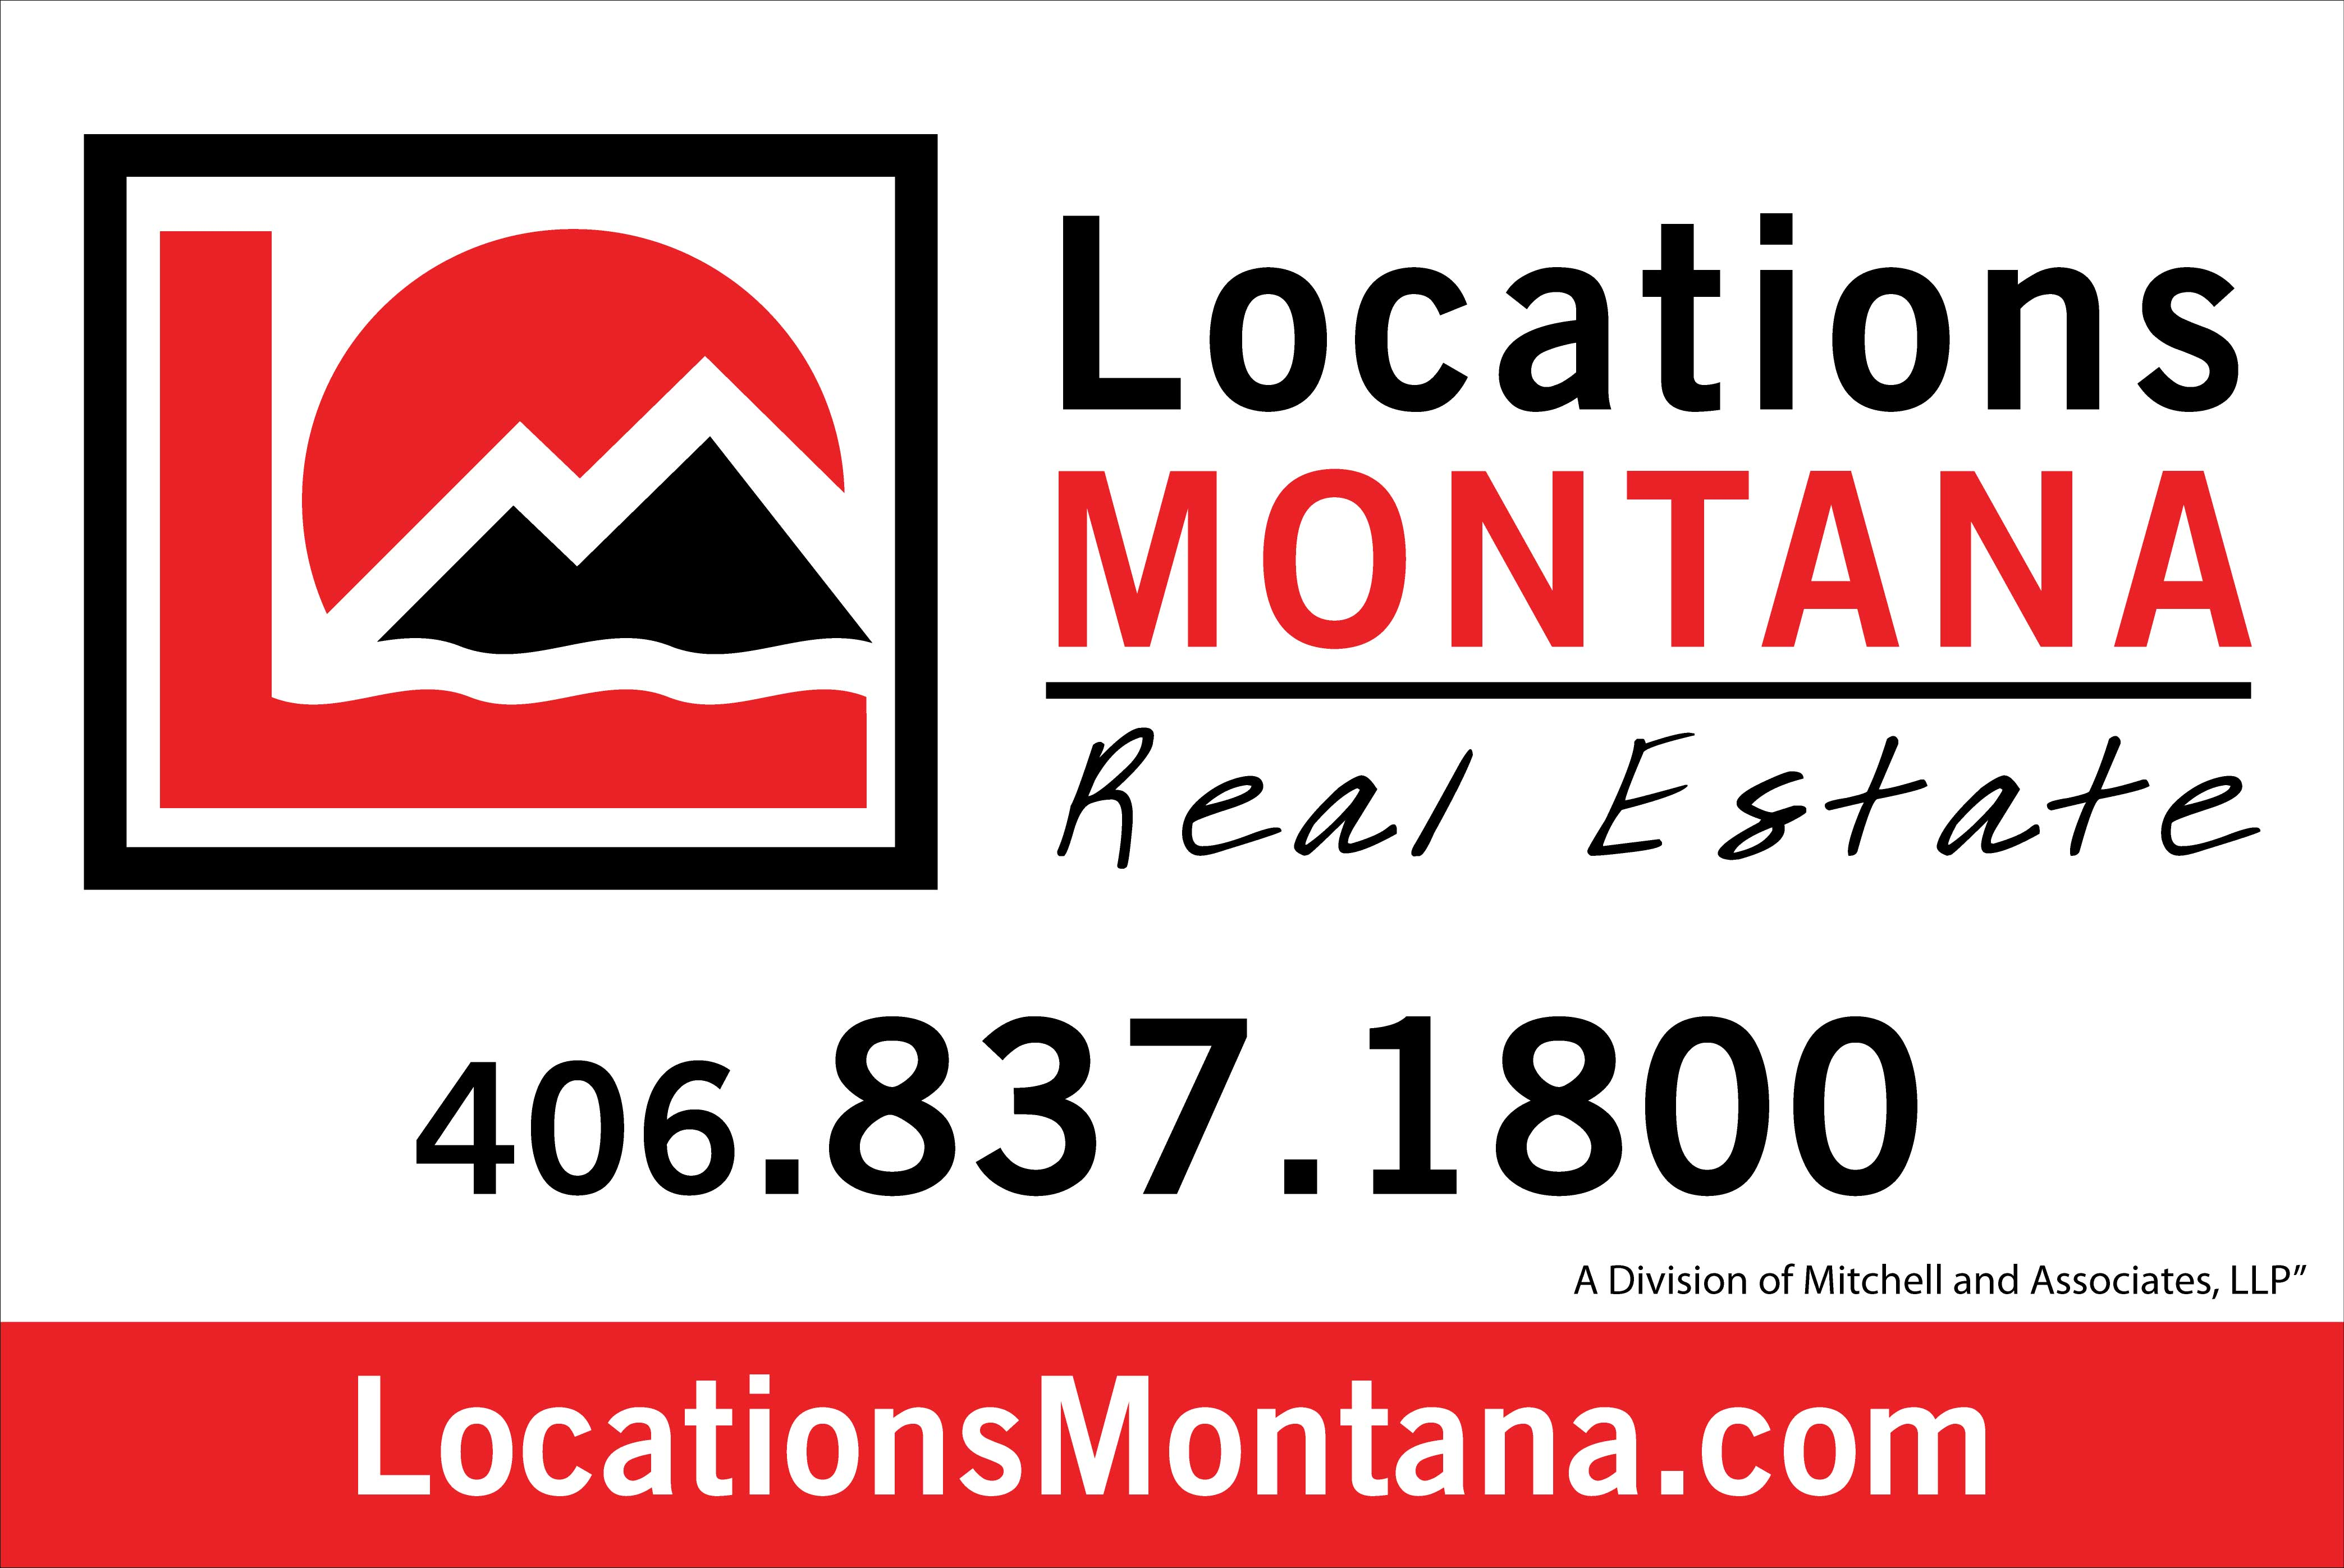 Locations Montana Real Estate